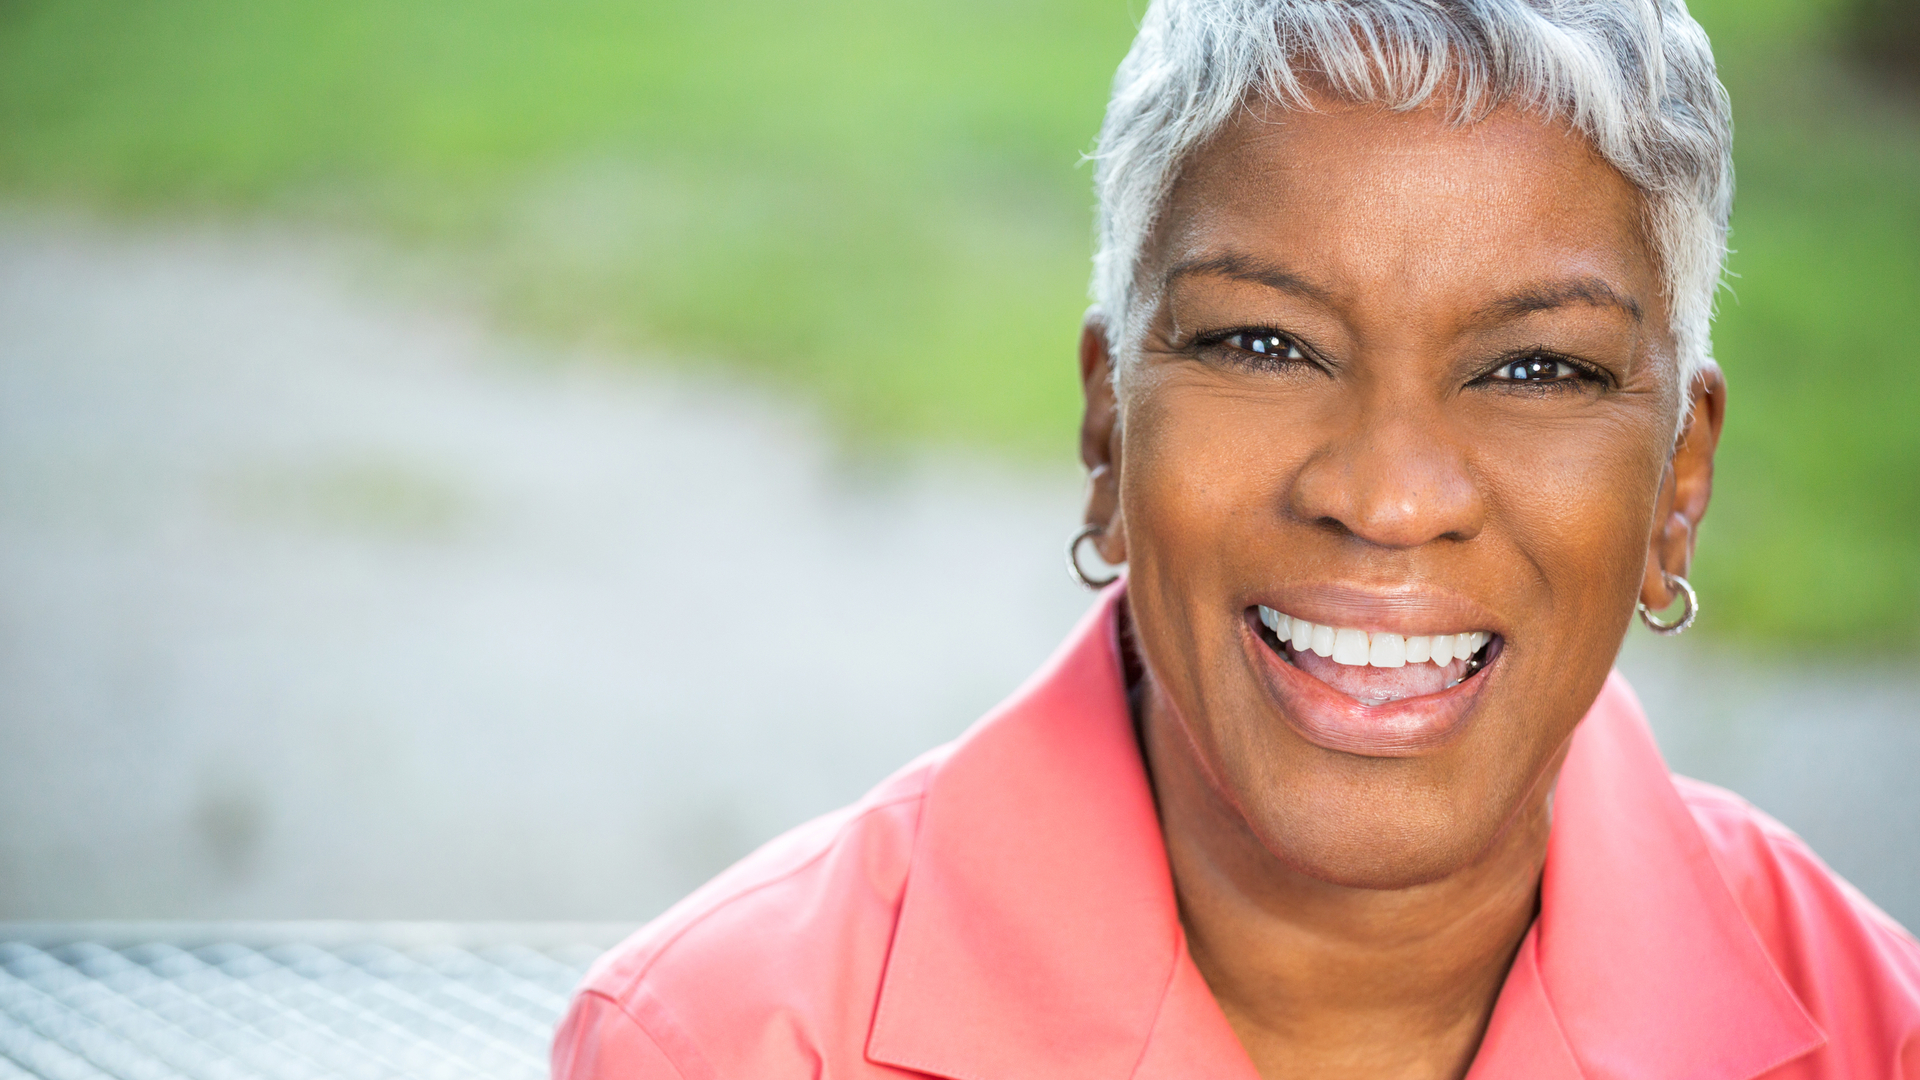 Image showing smiling woman. Catheters for women are designed for comfort and ease-of-use.